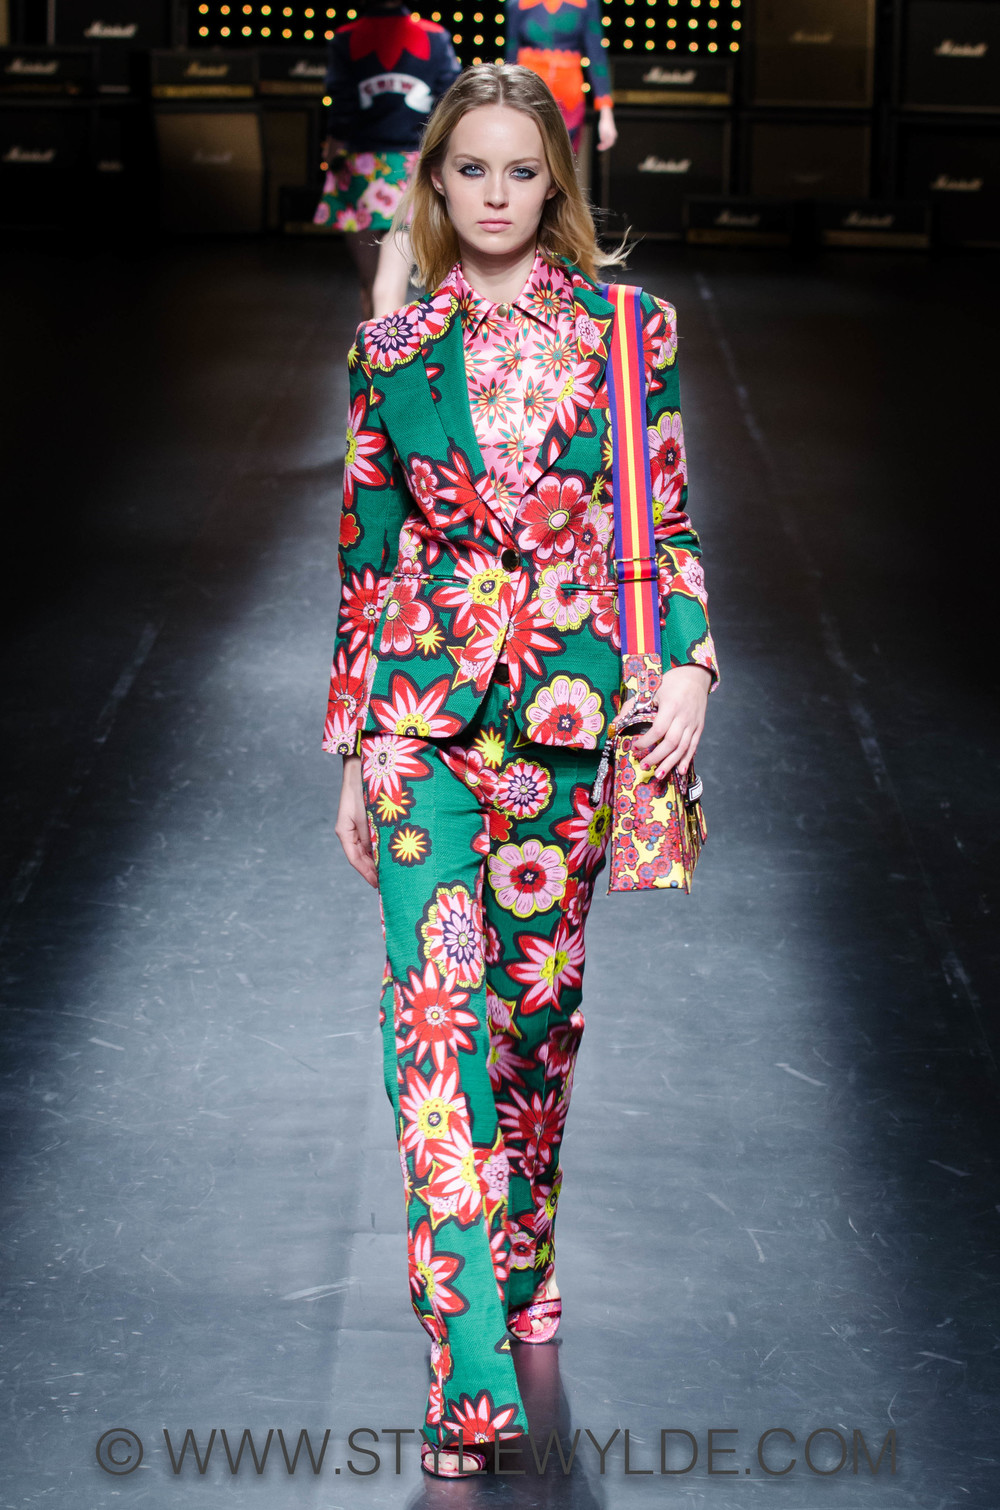 stylewylde_HouseofHolland_SS15 (6 of 68).jpg